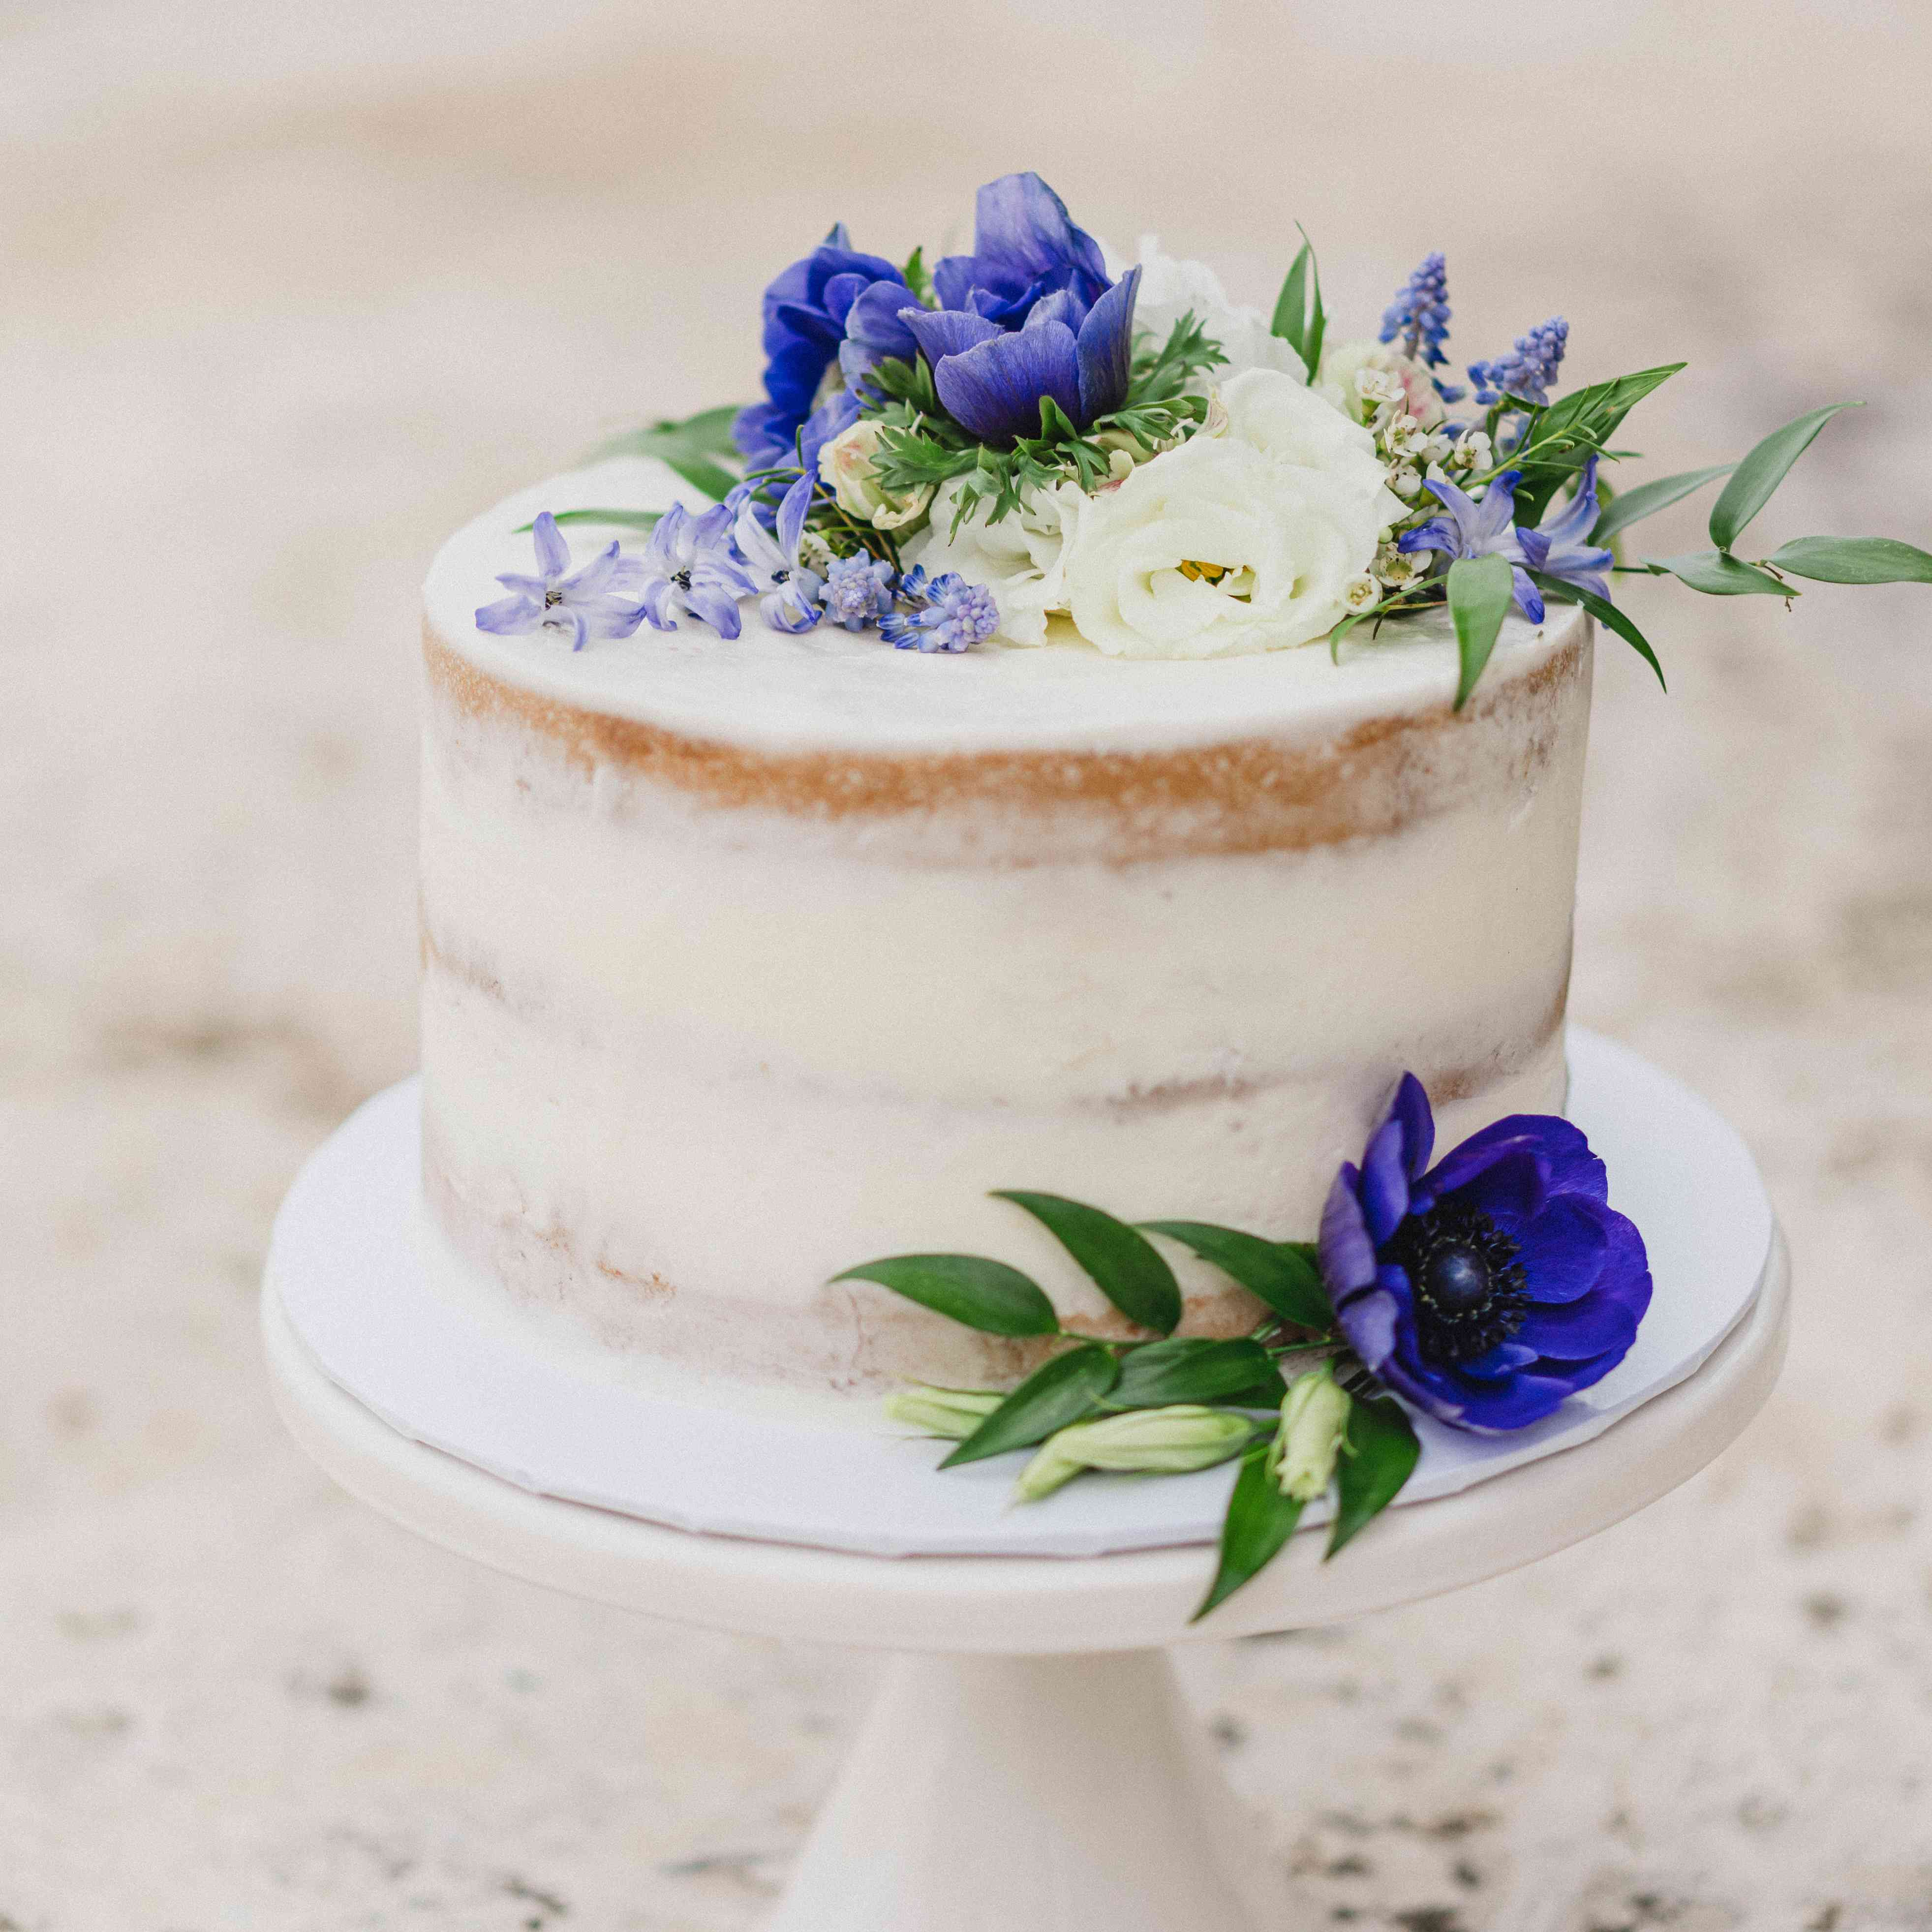 Semi-naked cake topped with violets and muscari